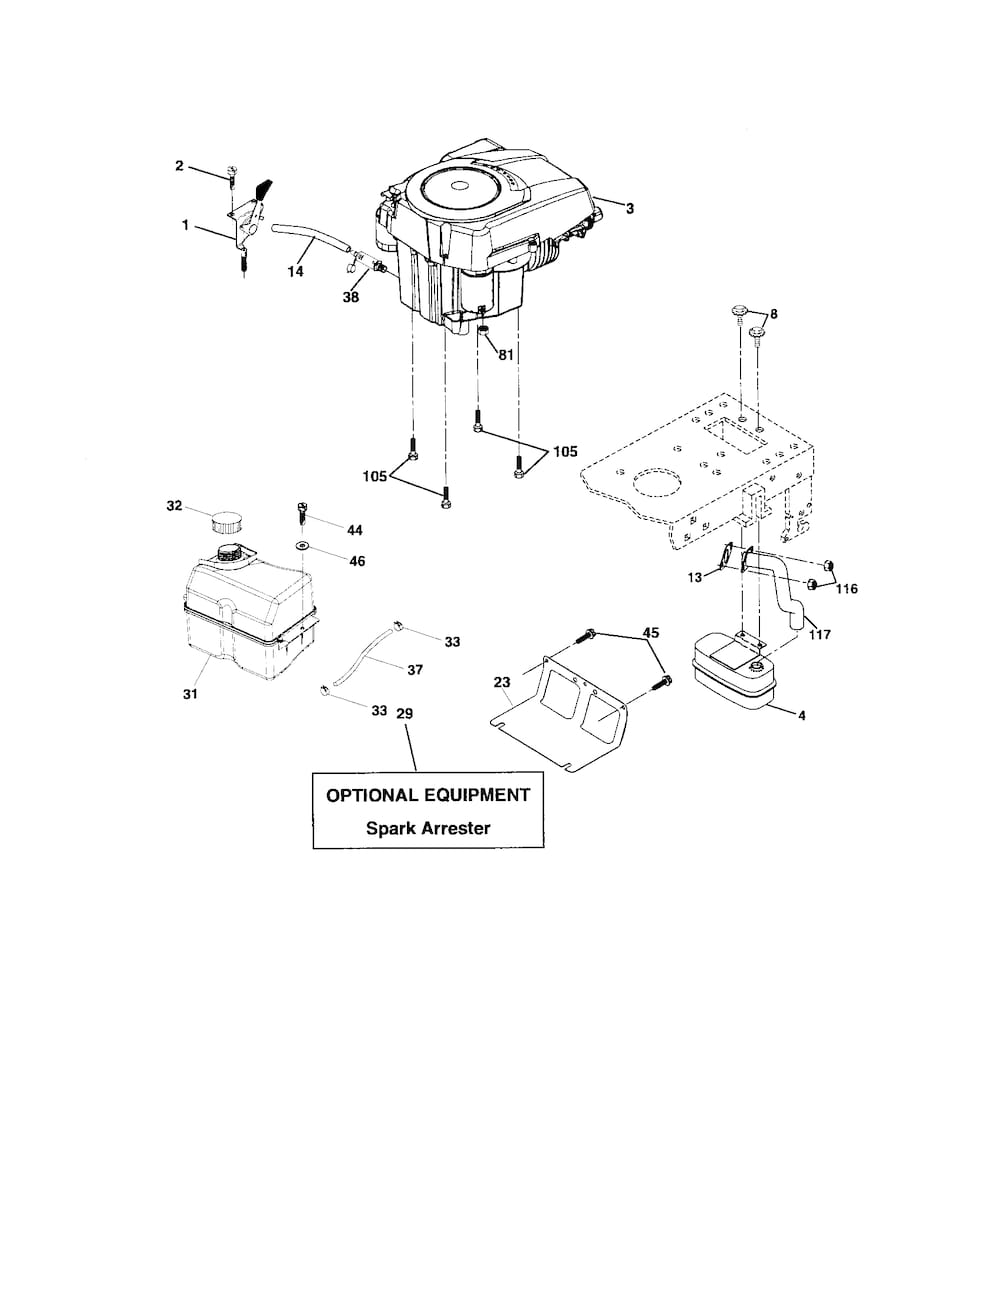 ... and Parts List for POULAN Riding-Mower-Tractor-Parts model # PK1942YT